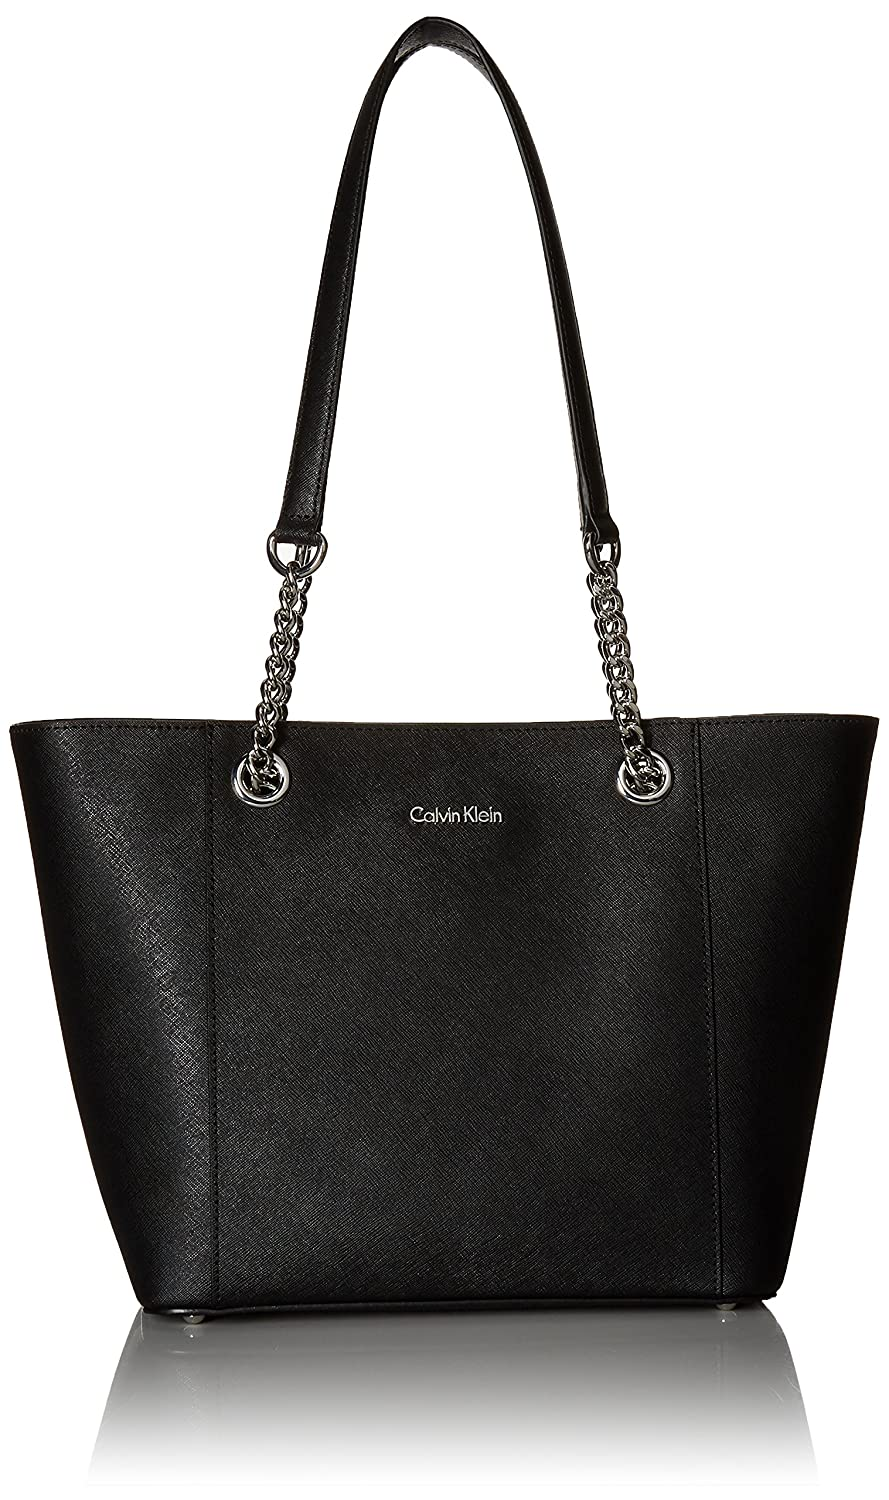 466f9e53e399 Calvin Klein Hayden Saffiano Leather East West Top Zip Chain Tote ...